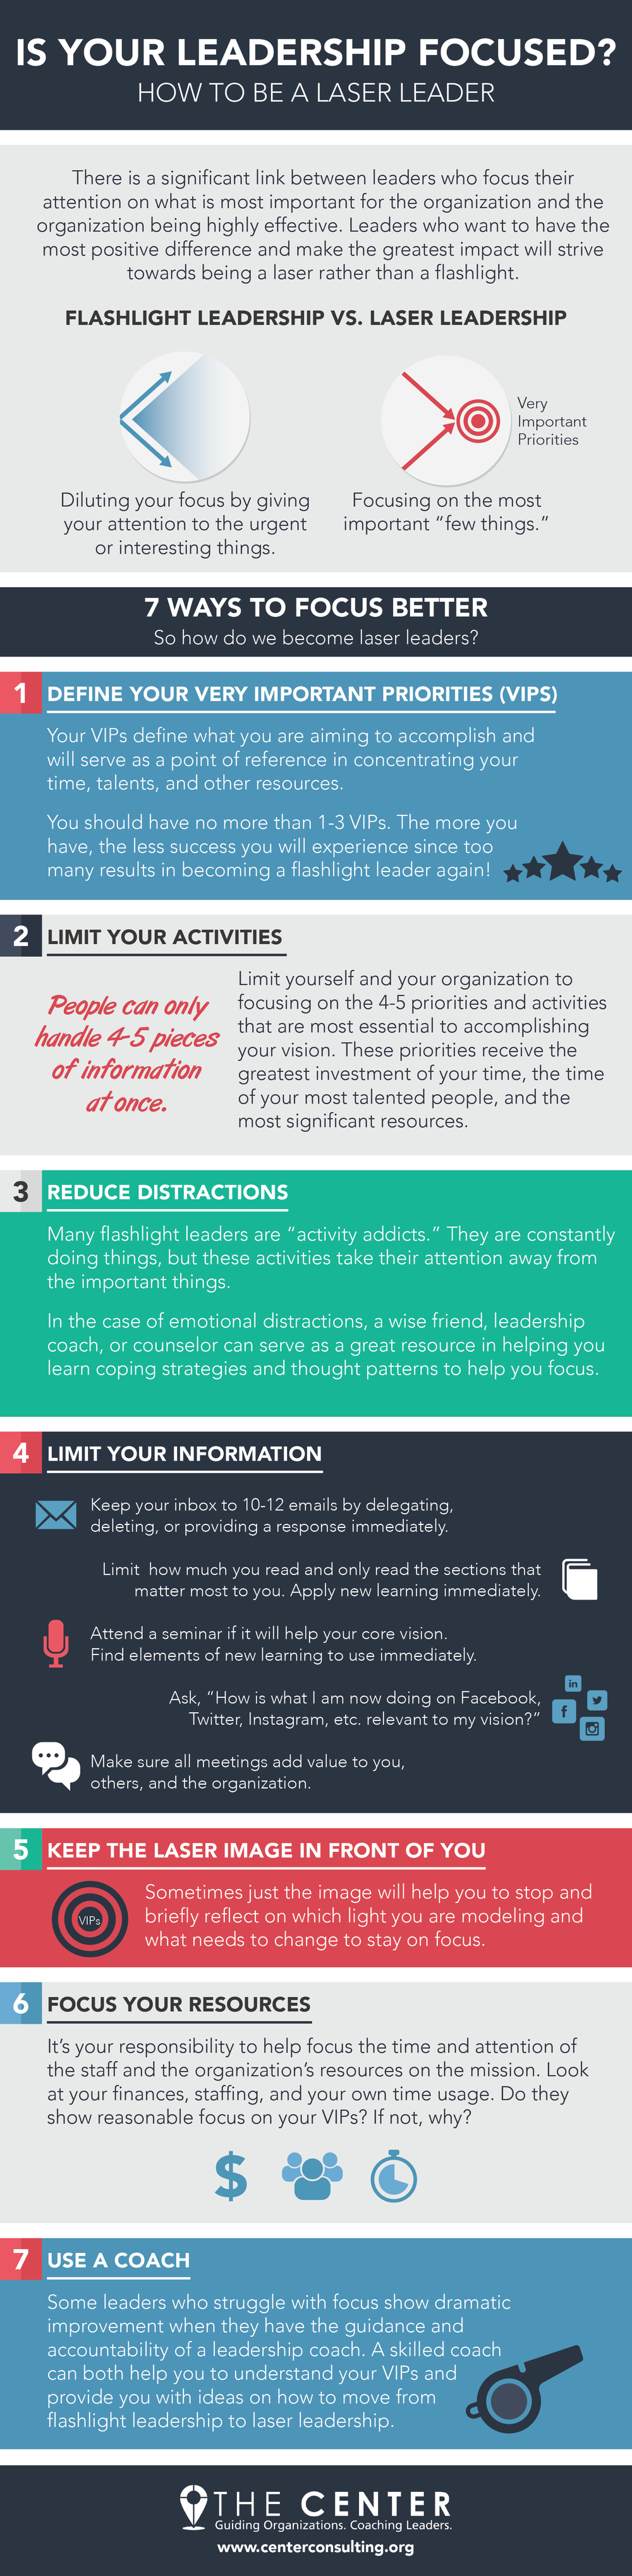 7 Ways to Become a Focused Leader [Infographic]- The Center Consulting Group - Leadership Coaching and Consulting for Businesses, Churches, and Non-Profits